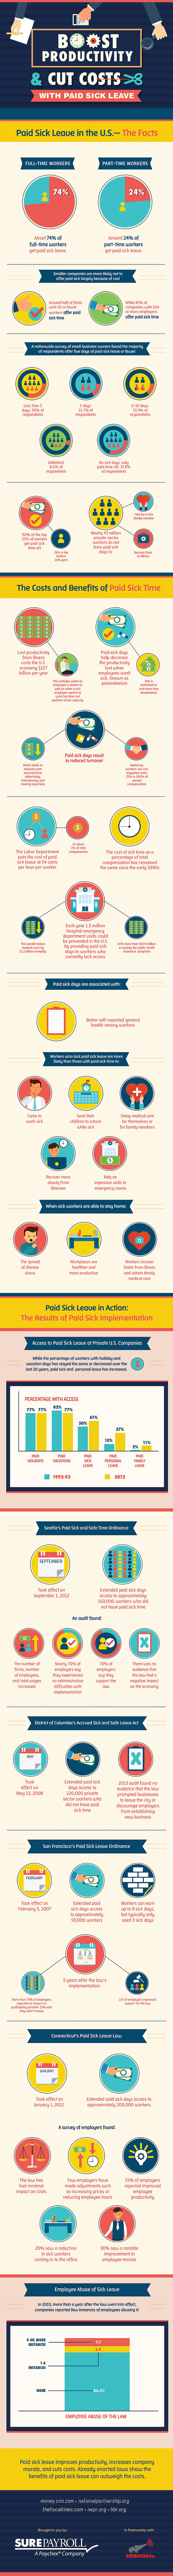 boost productivity with paid sick leave